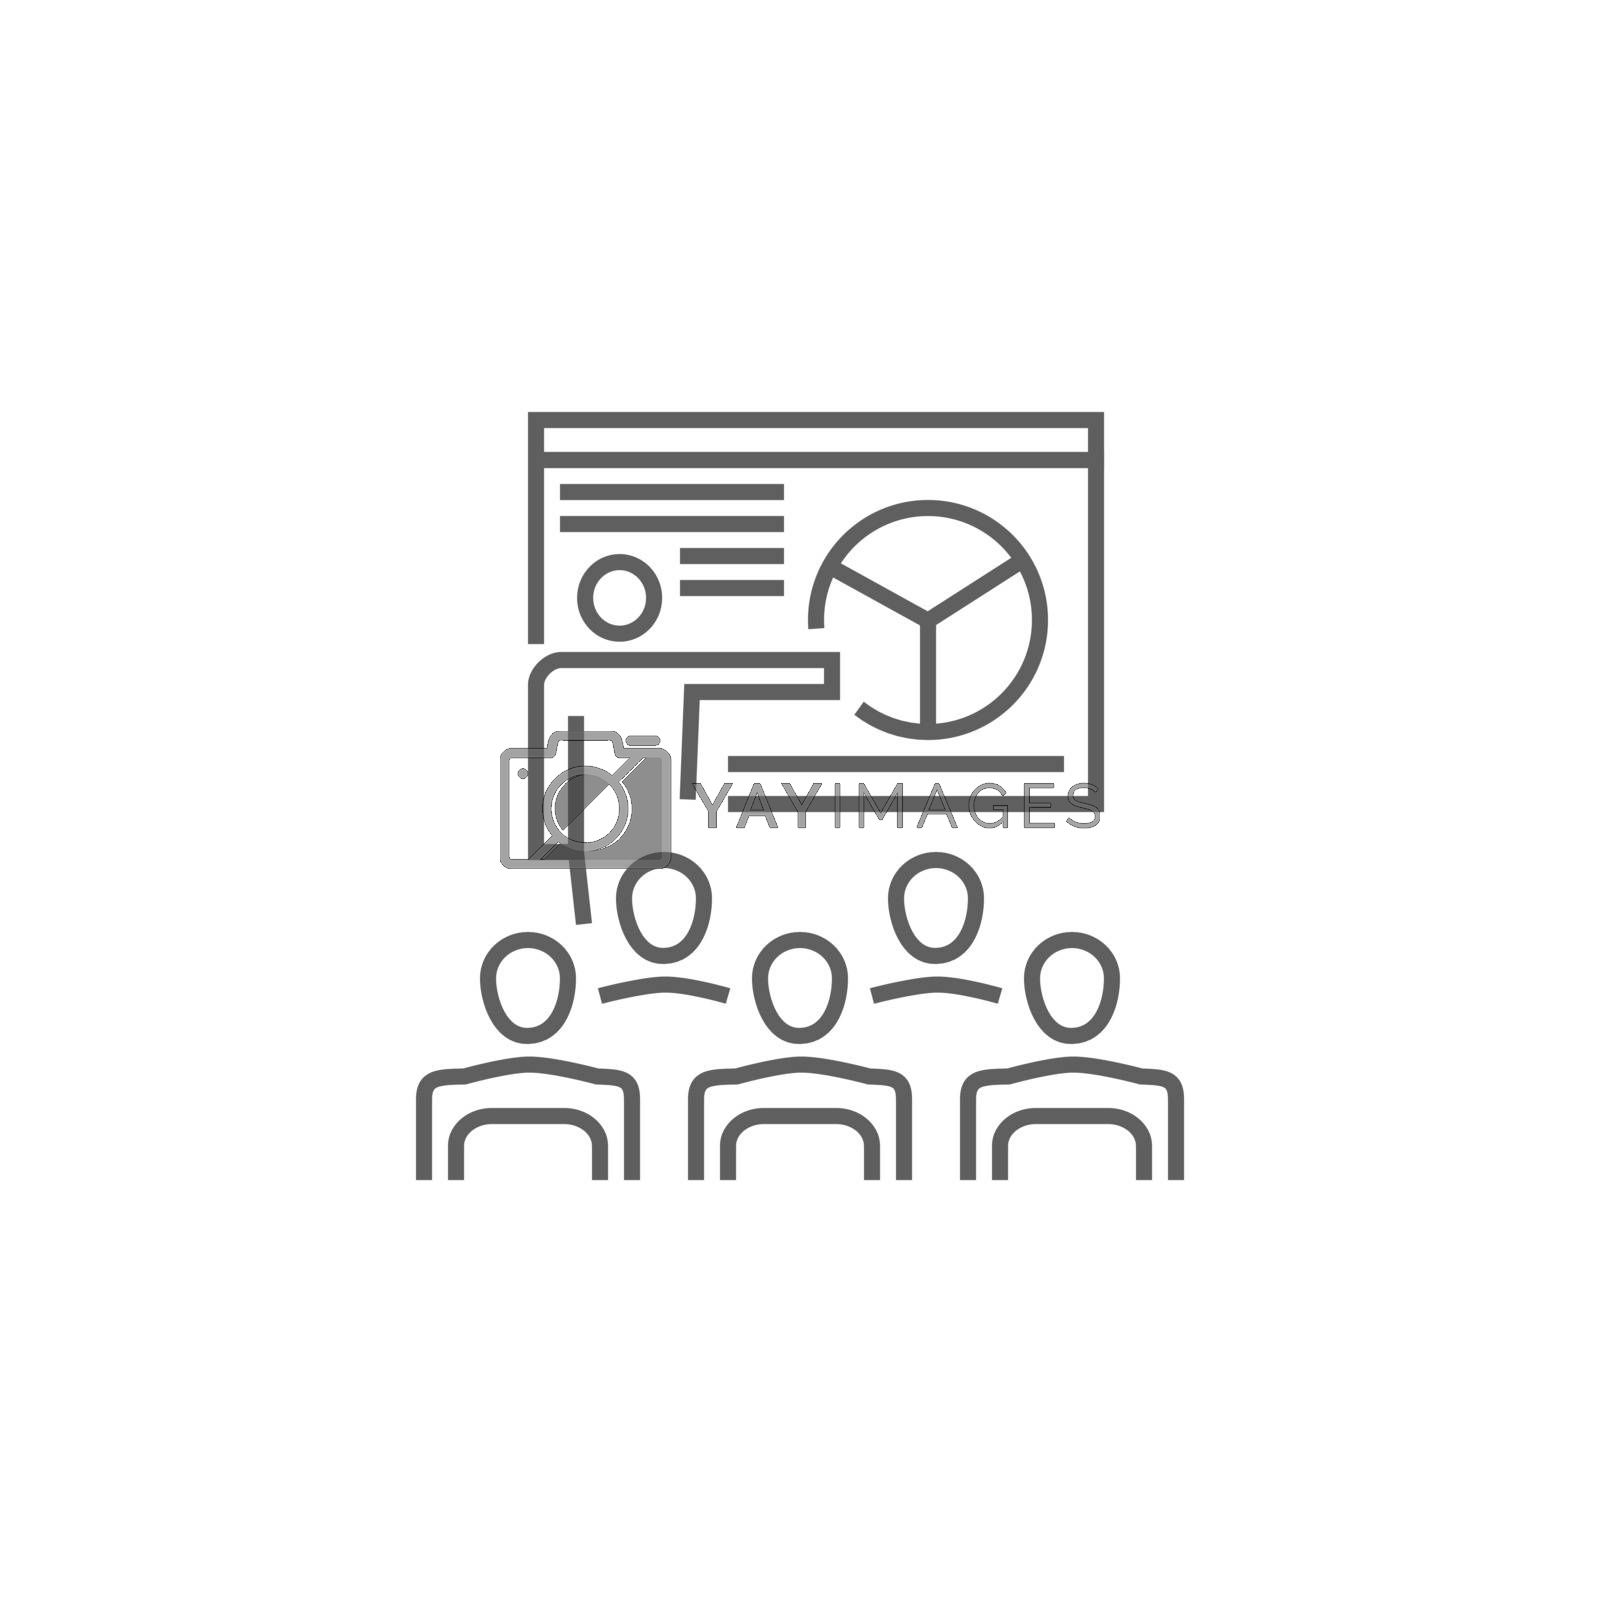 Presentation Line Icon by smoki